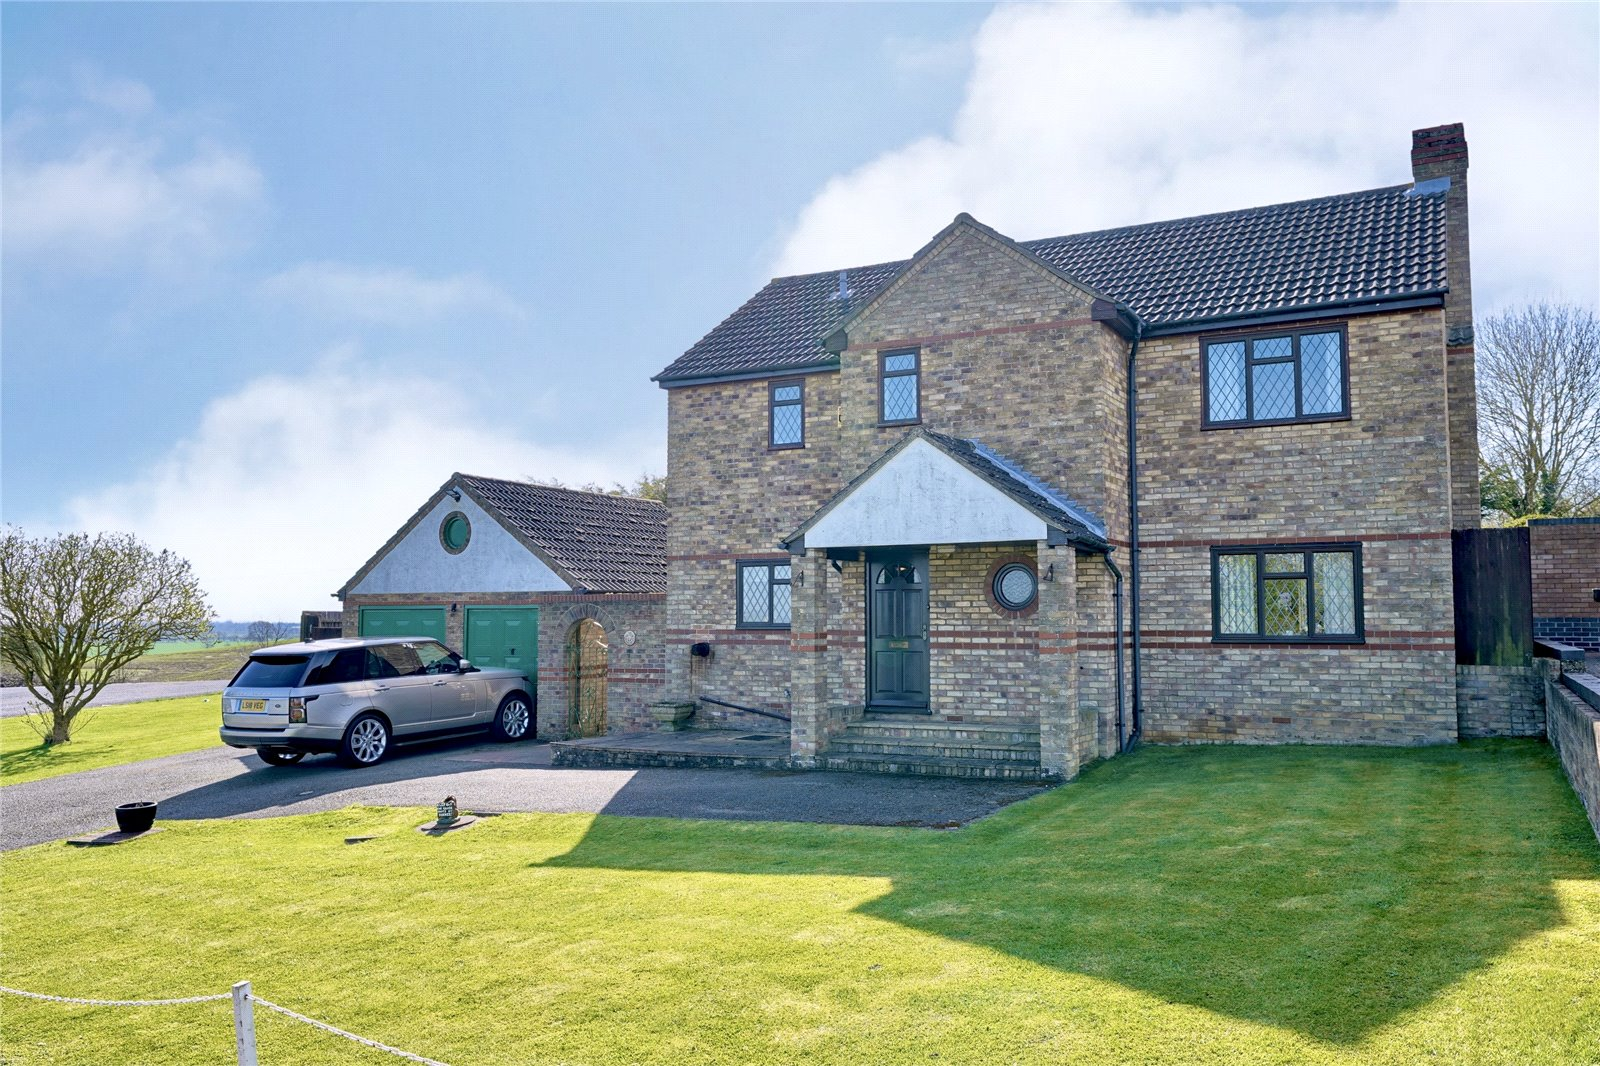 4 bed house for sale in Warboys, PE28 2TQ  - Property Image 1